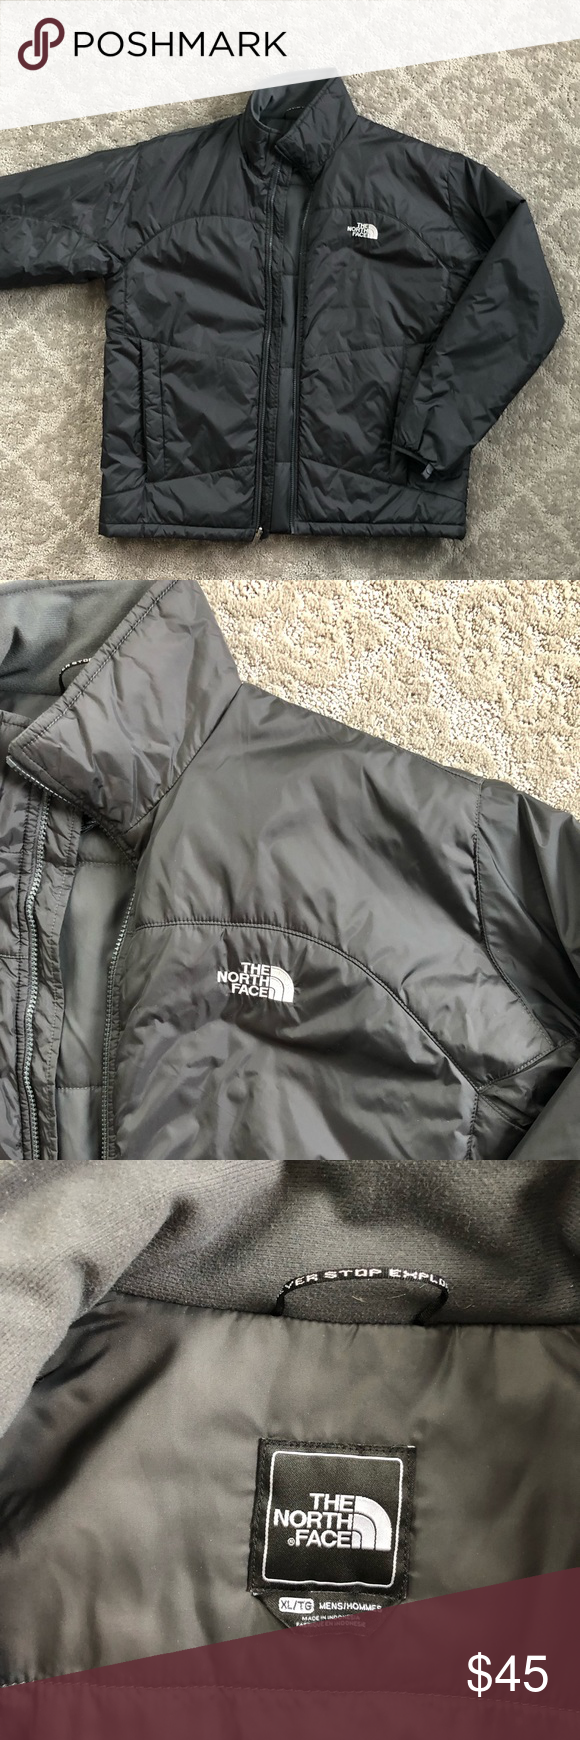 North Face Puffer Jacket North Face Puffer Jacket Jackets The North Face [ 1740 x 580 Pixel ]